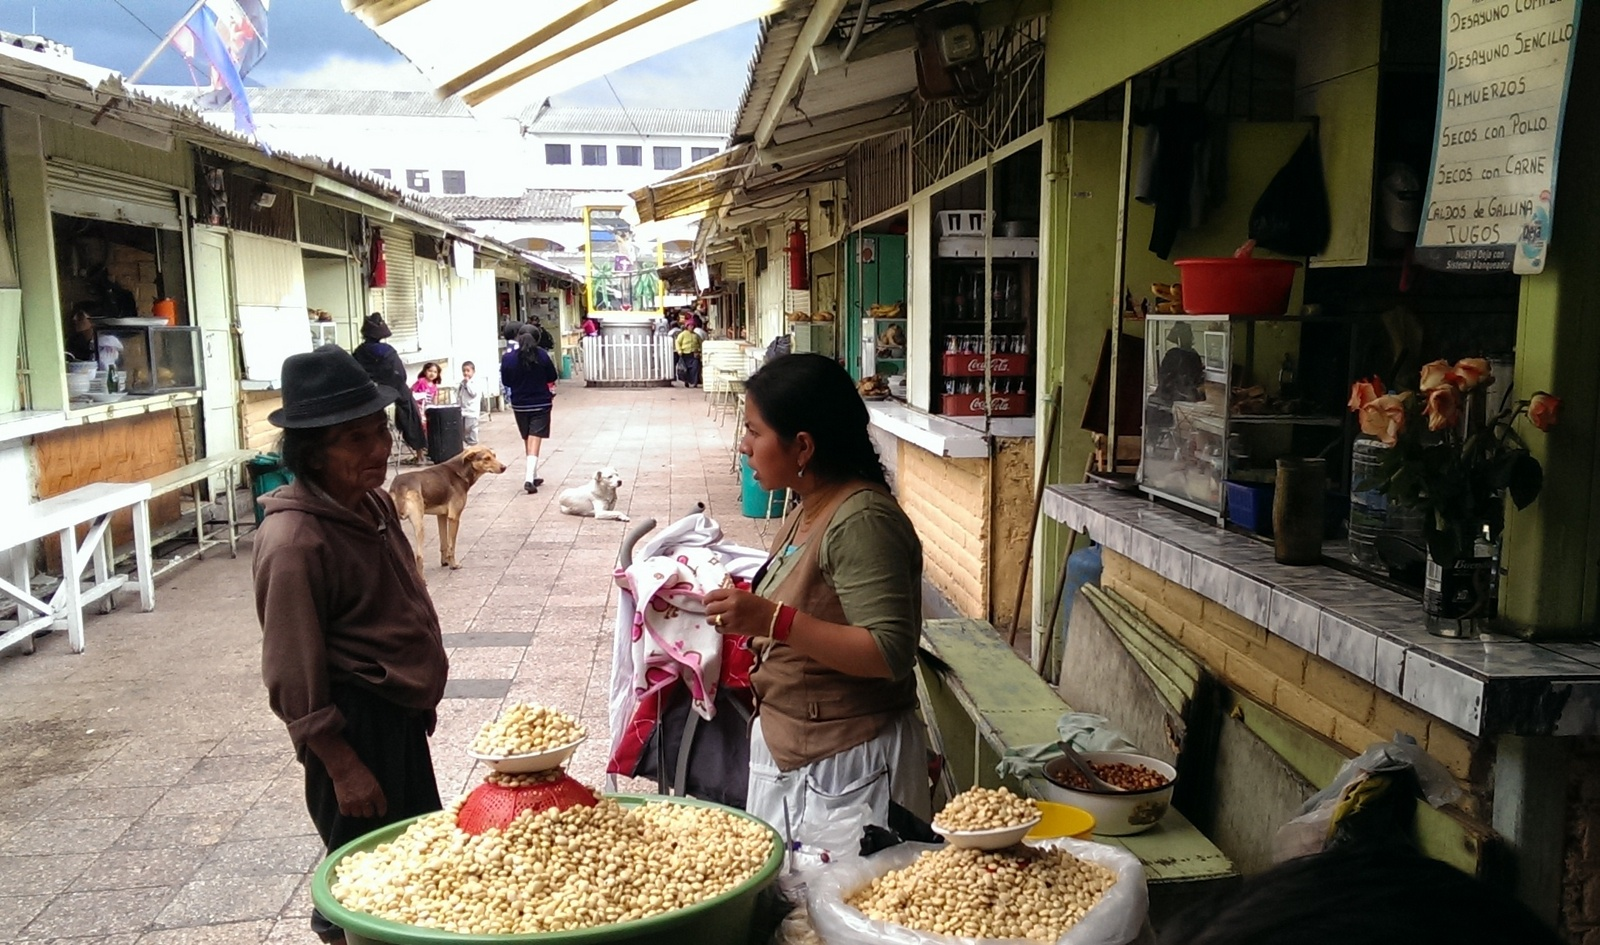 Otavalo - The Real Market